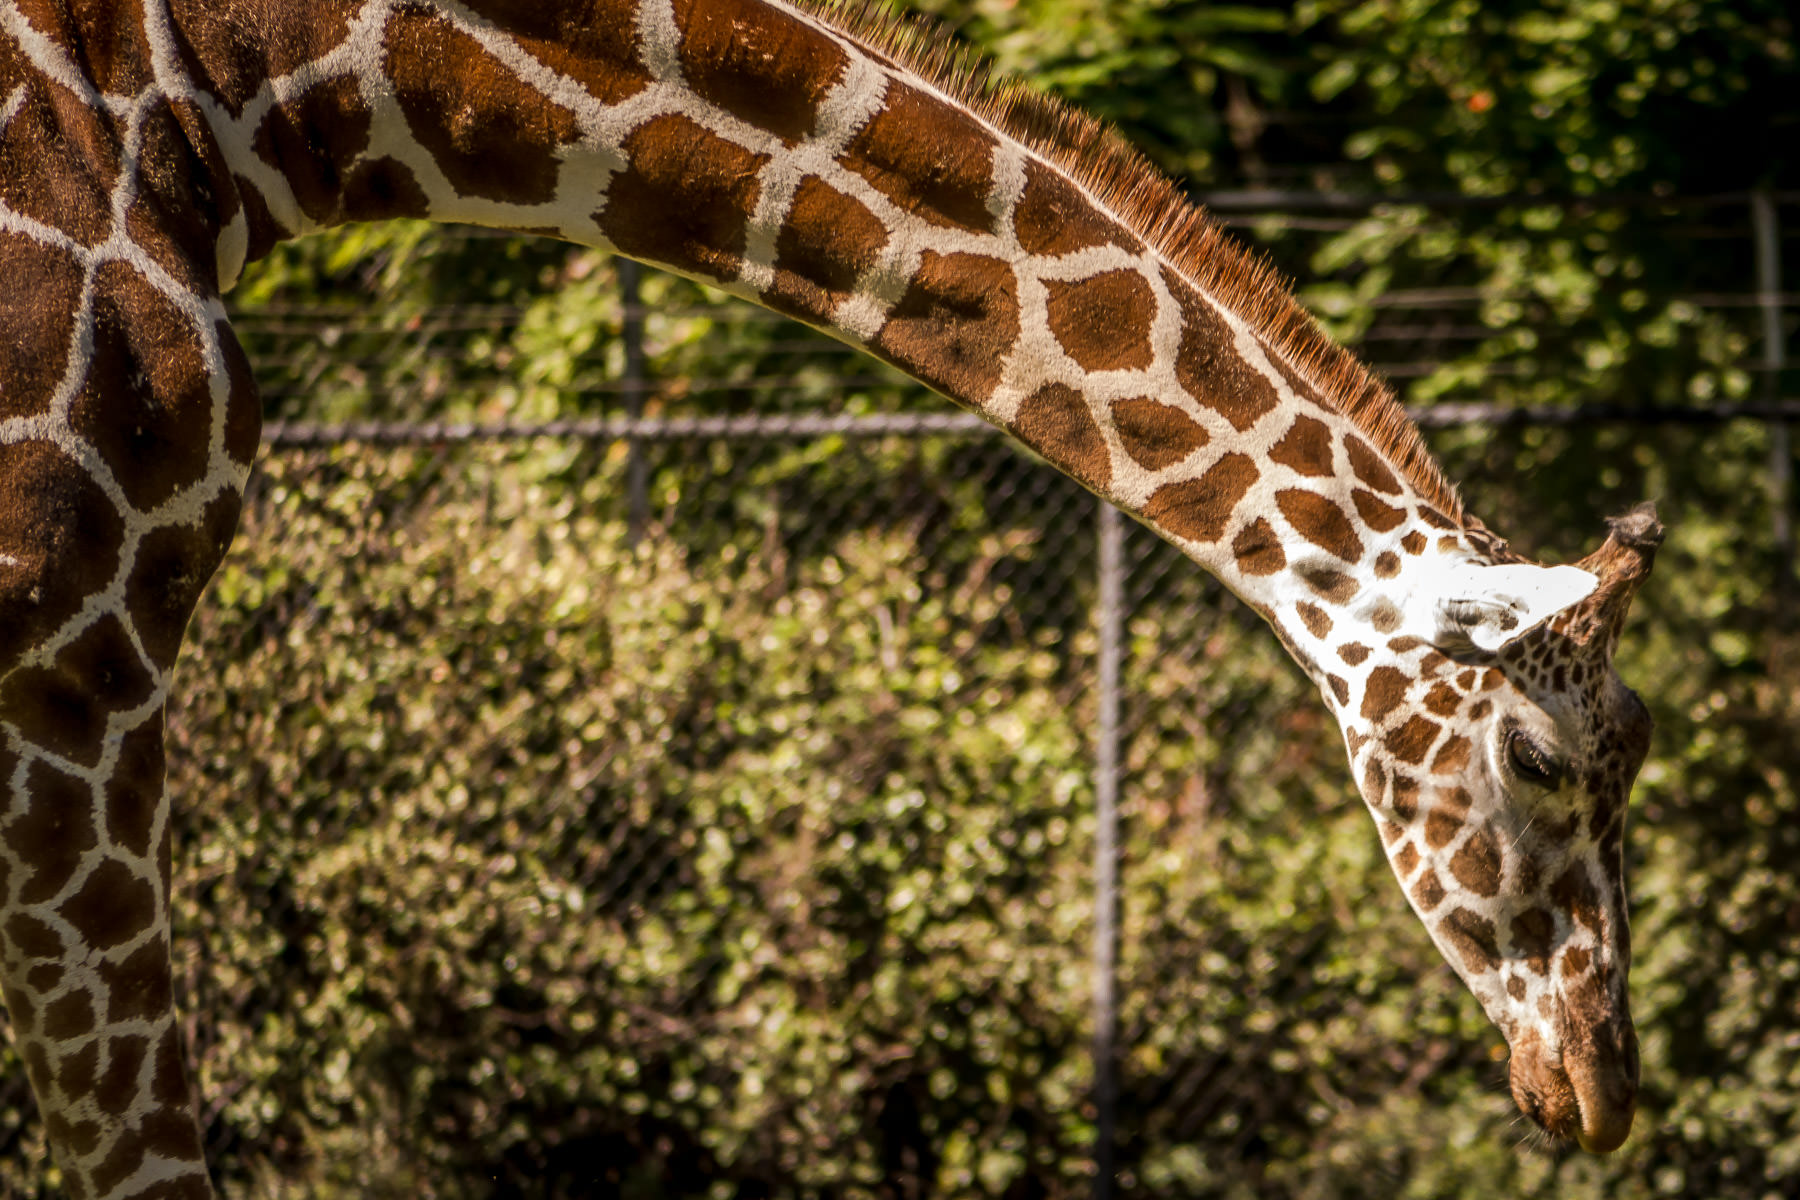 A giraffe arches its long neck at the Fort Worth Zoo.